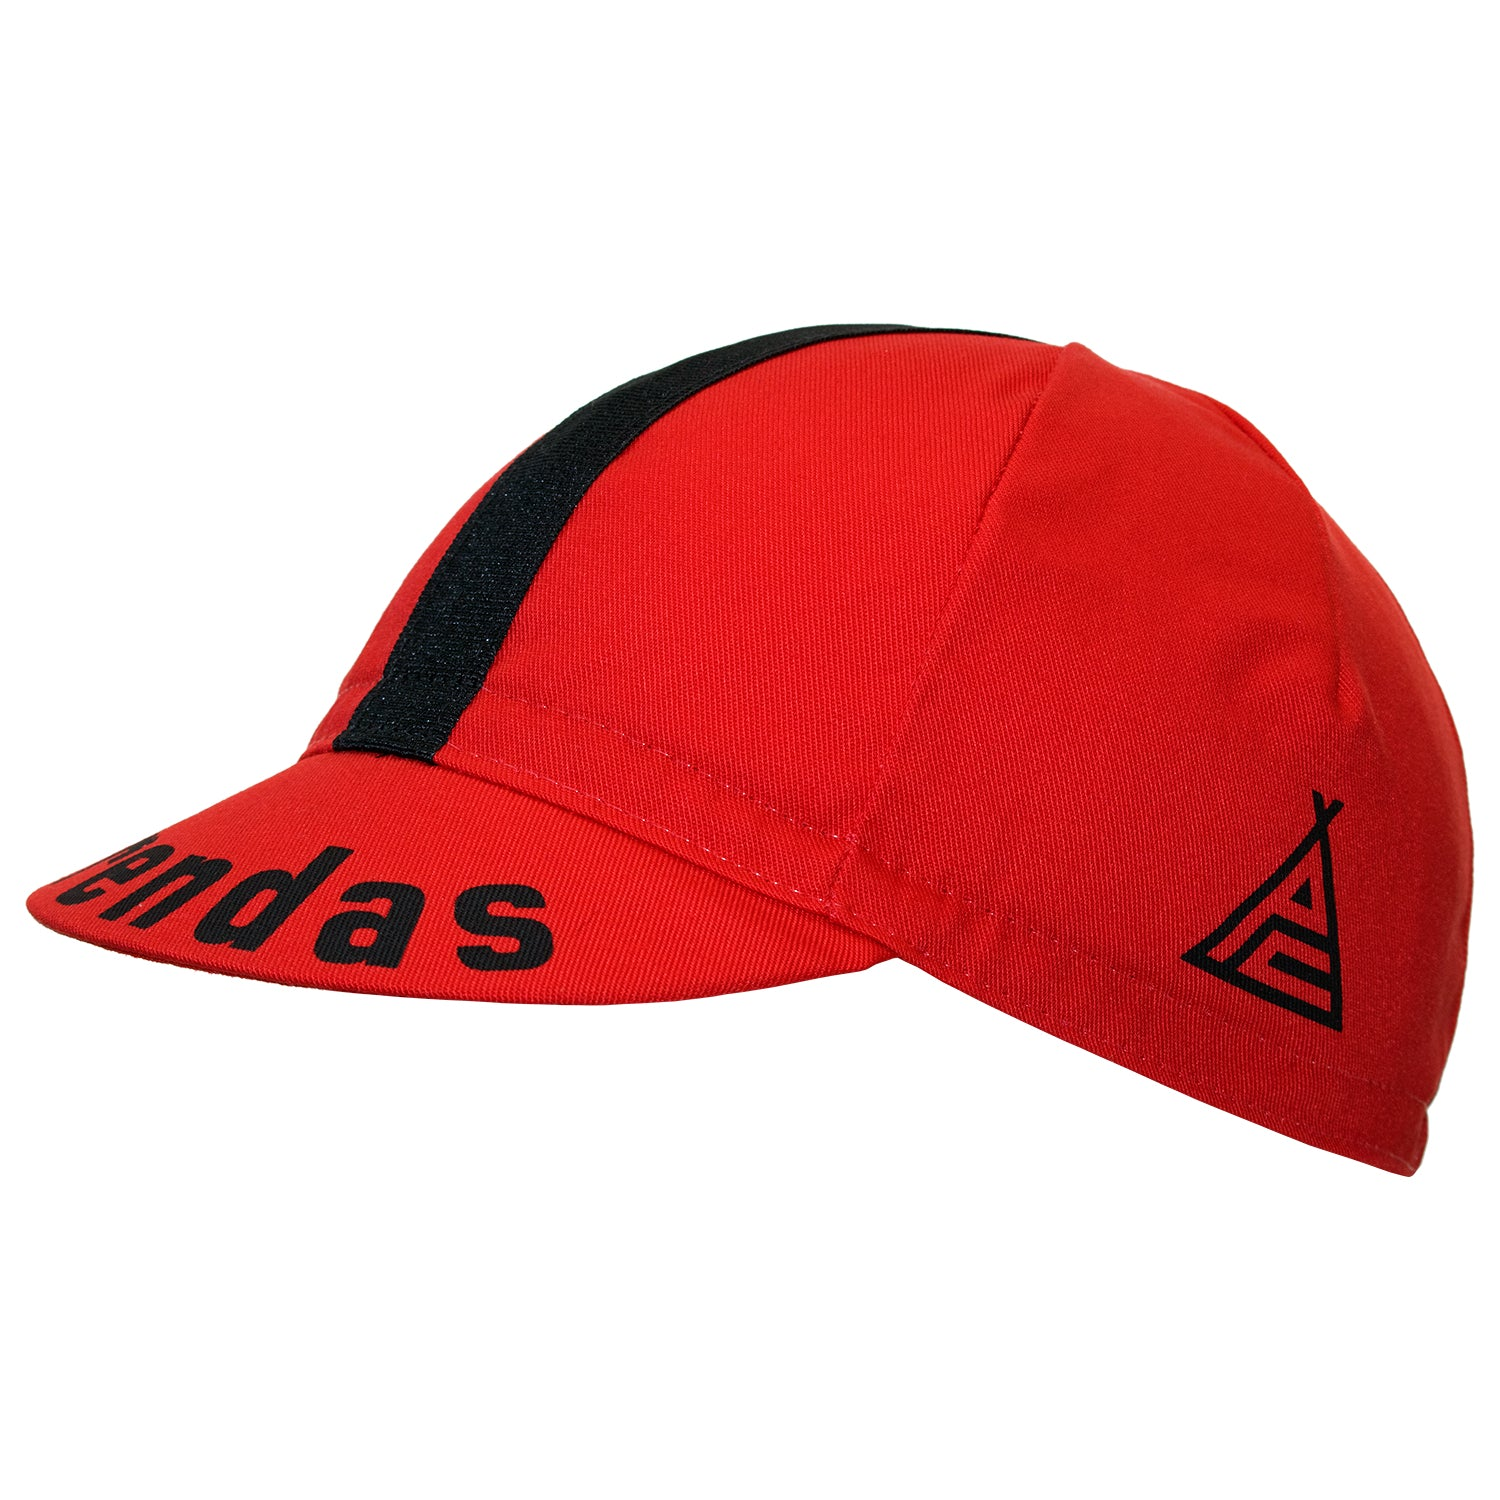 Prendas il Grande Red Cotton Cycling Cap